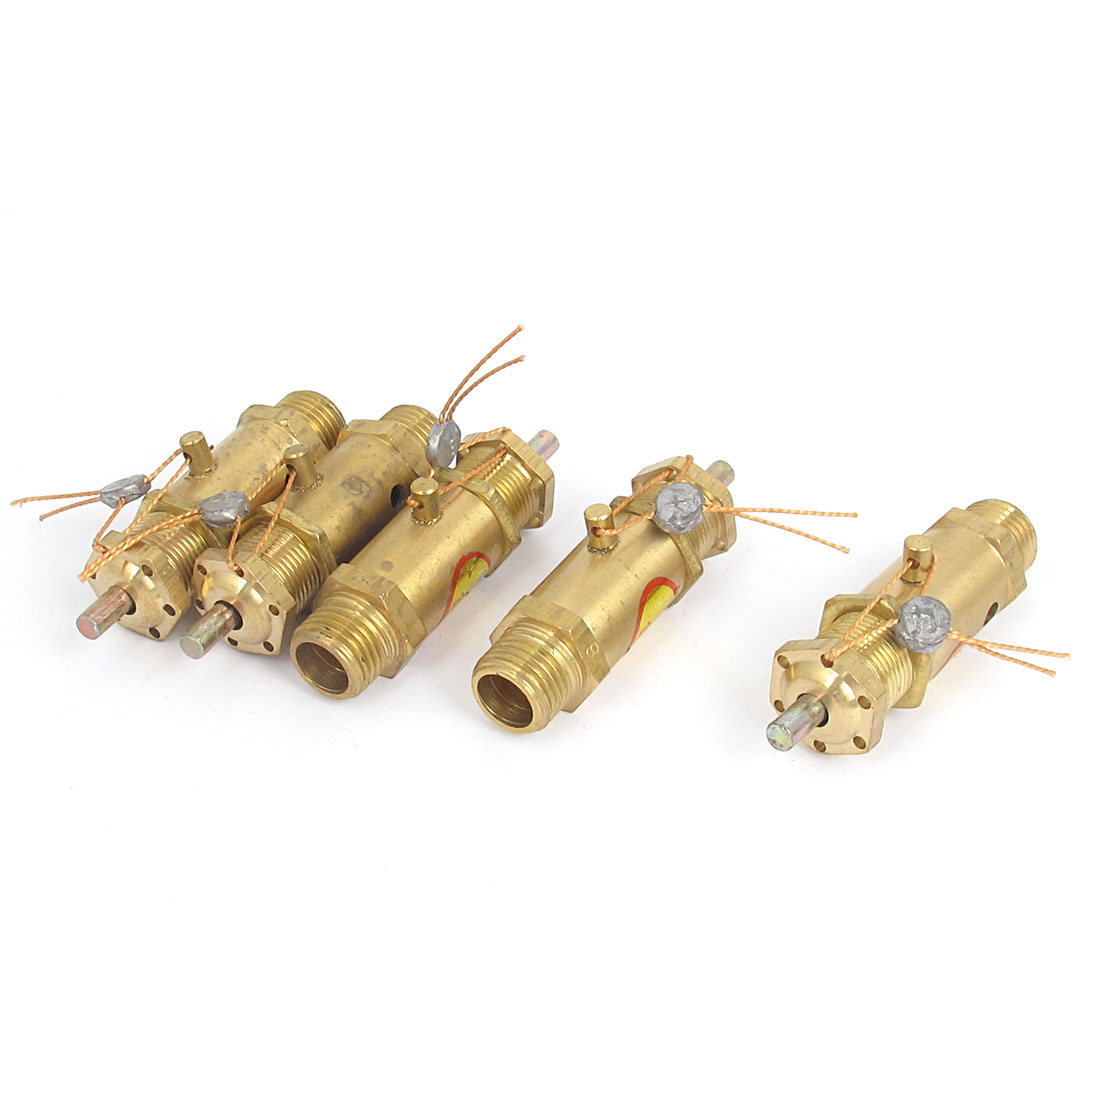 1/4BSP Male Thread Air Compressor Safety Pressure Relief Valve Gold Tone 5pcs